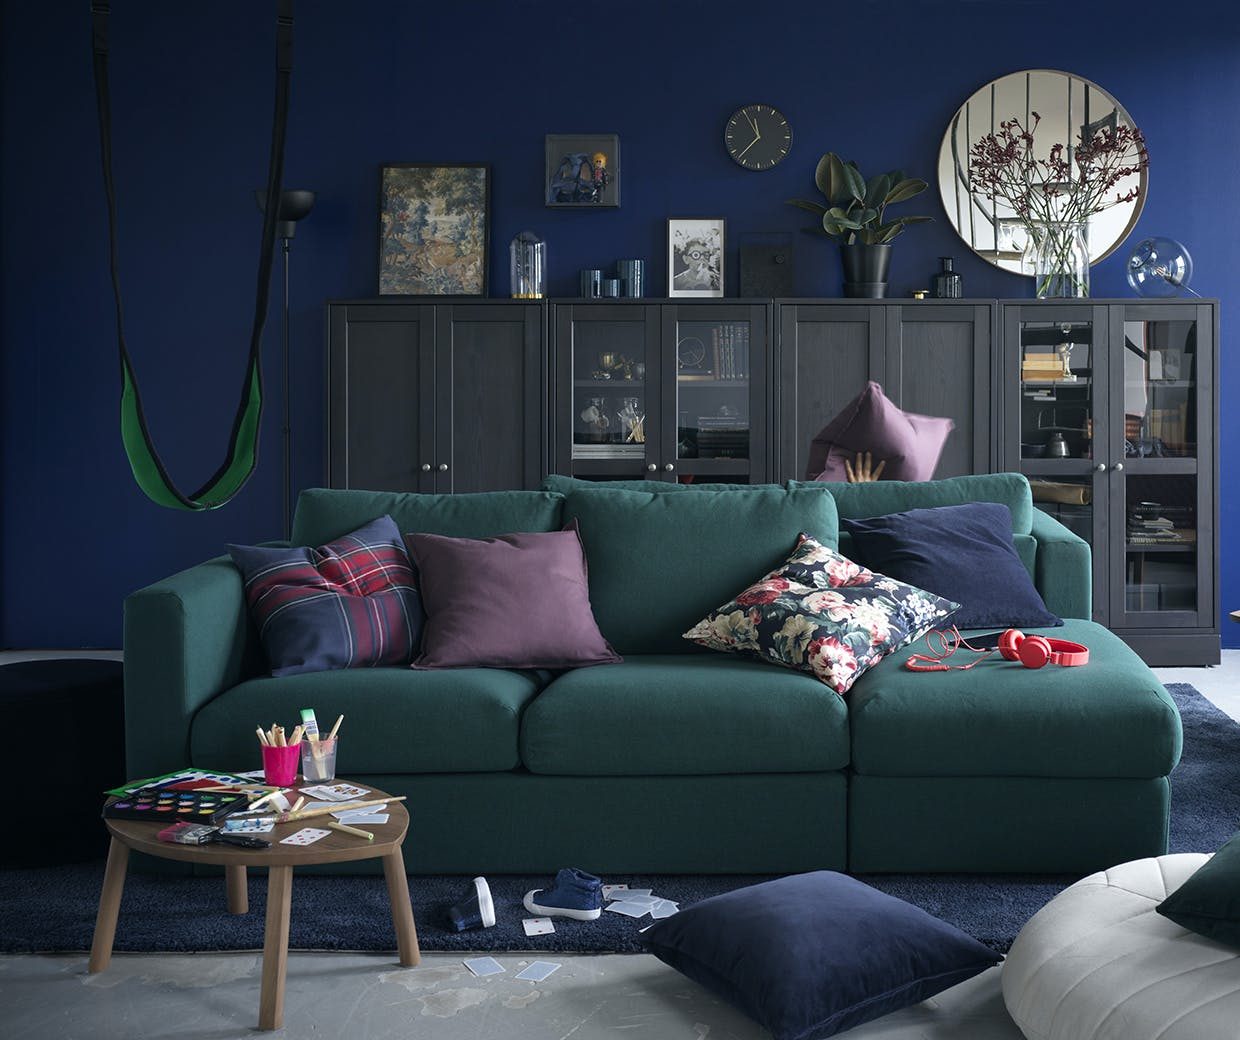 Ikea Front Ikea S Foray Into The Rental Economy Shows A Brand Firmly On The